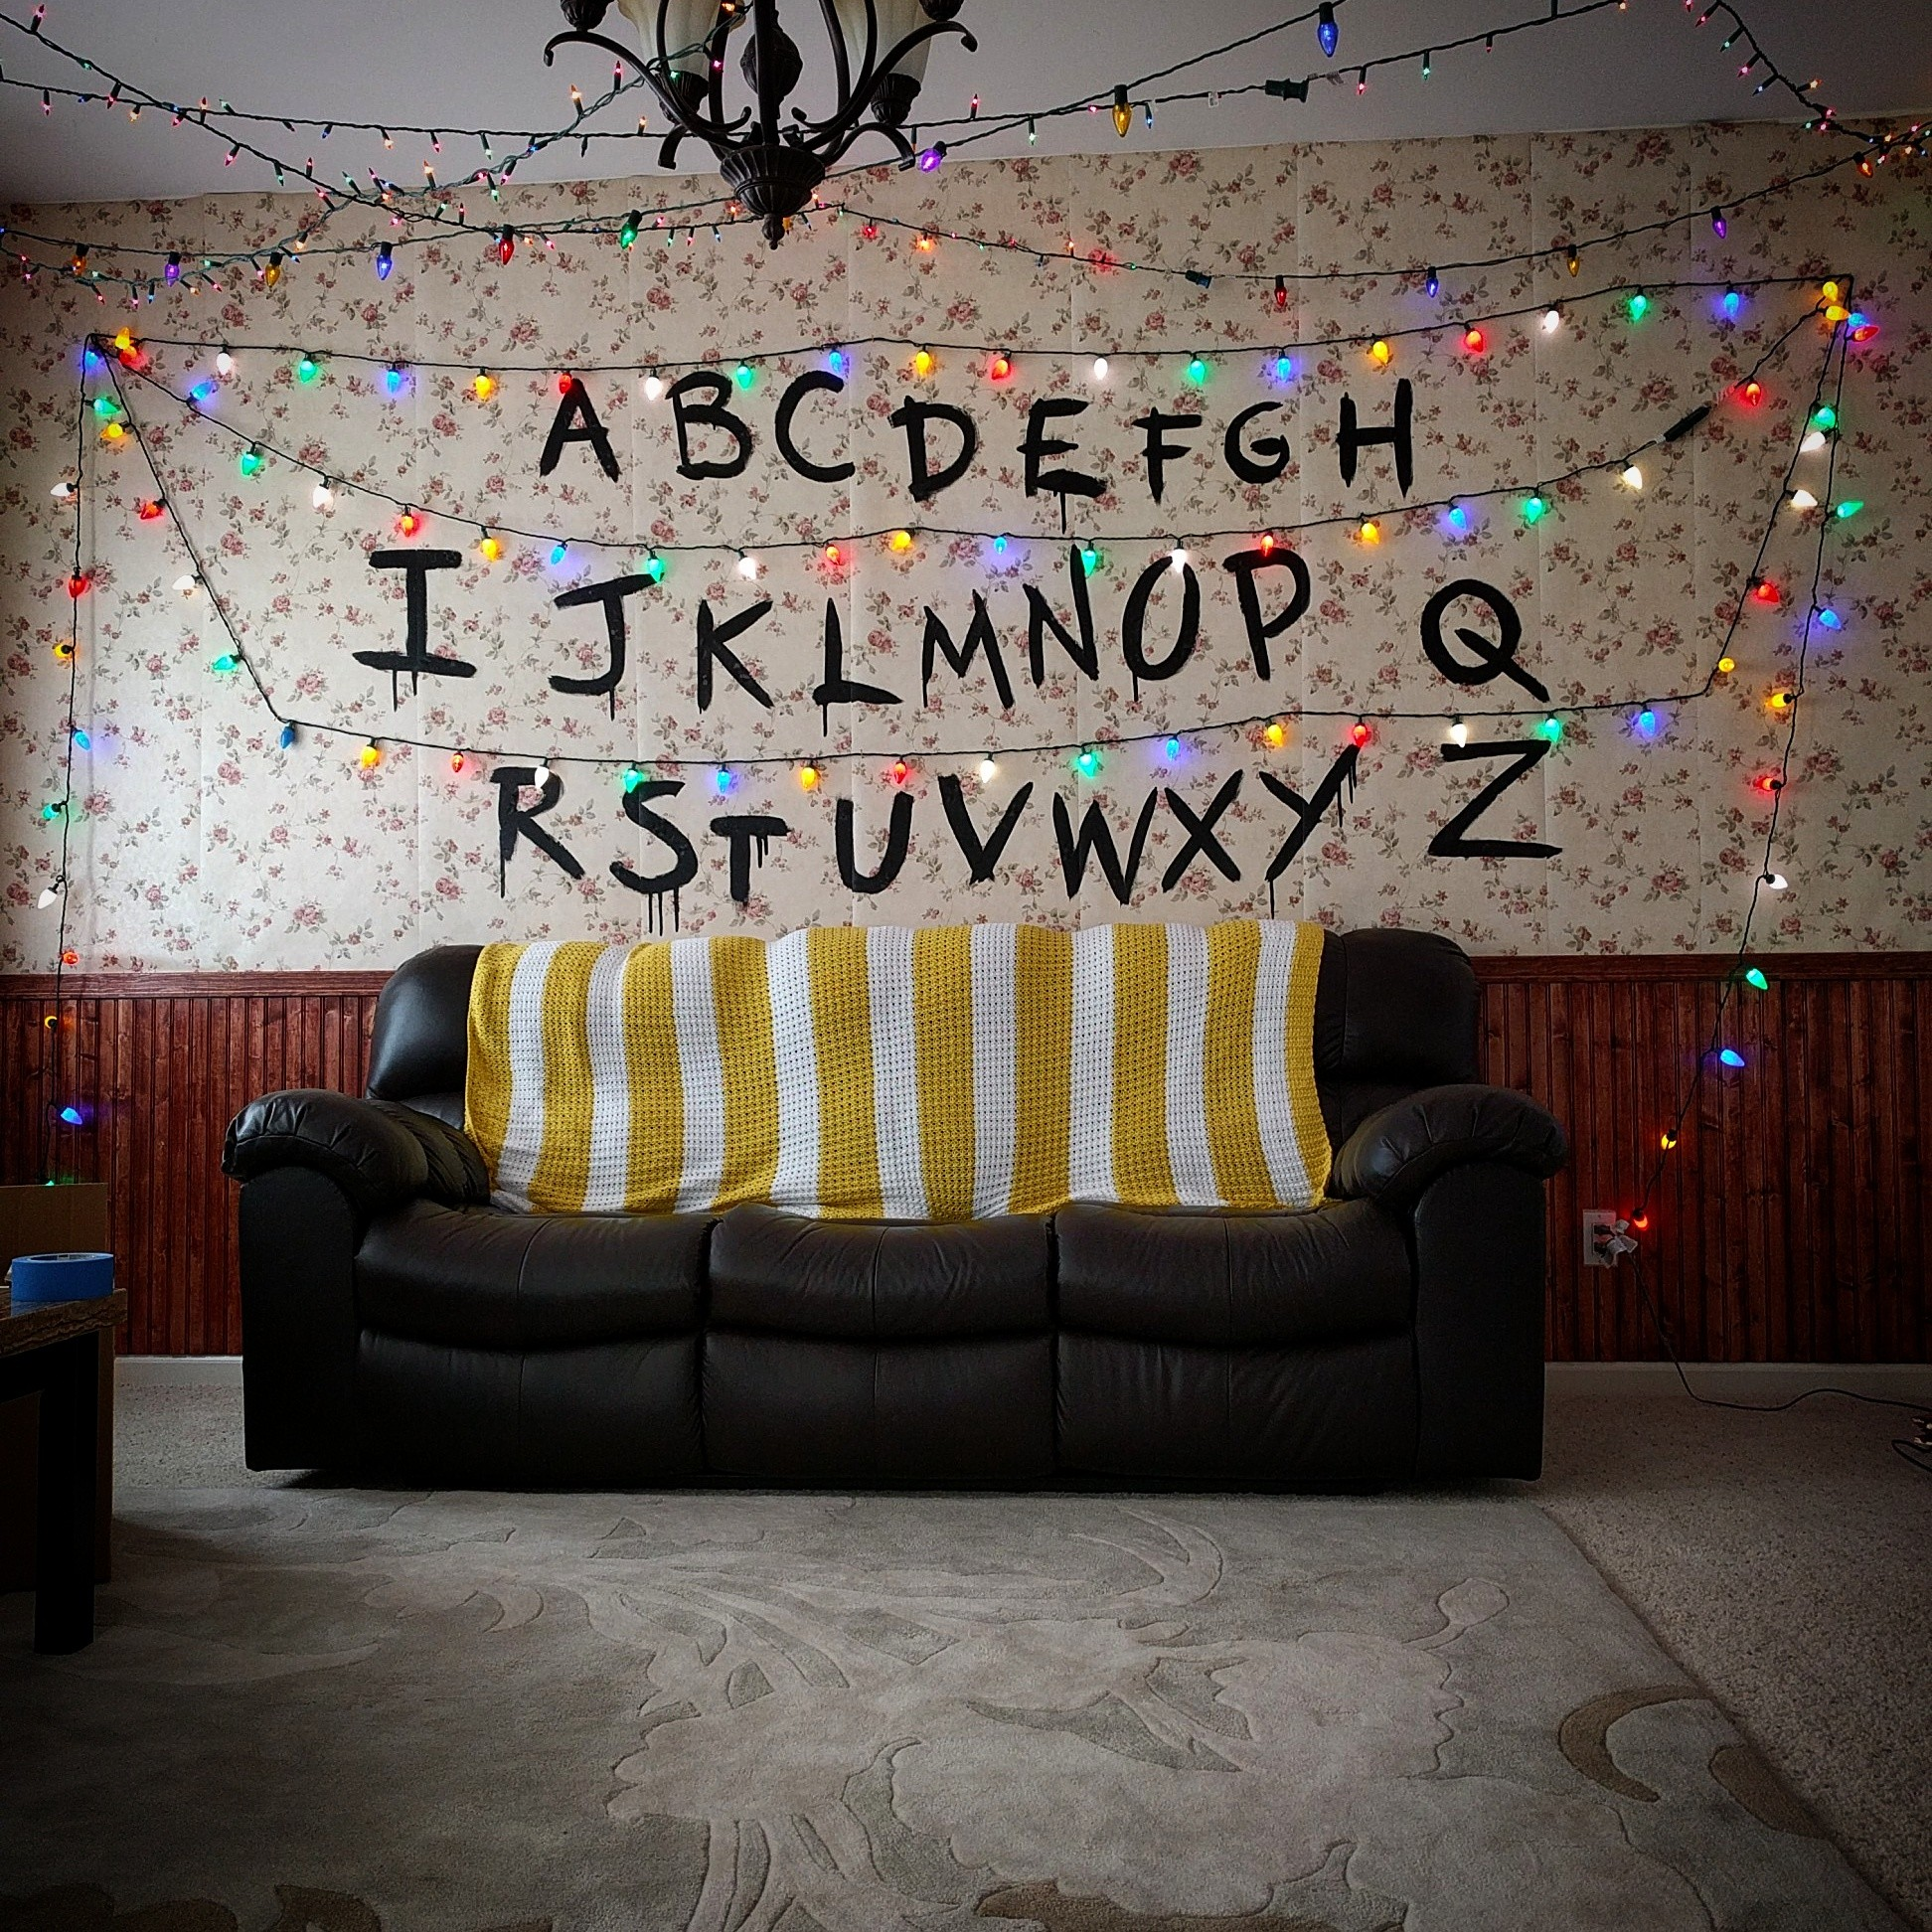 25 Wall Decoration Ideas For Your Home: Stranger Things Wallpaper (72+ Immagini